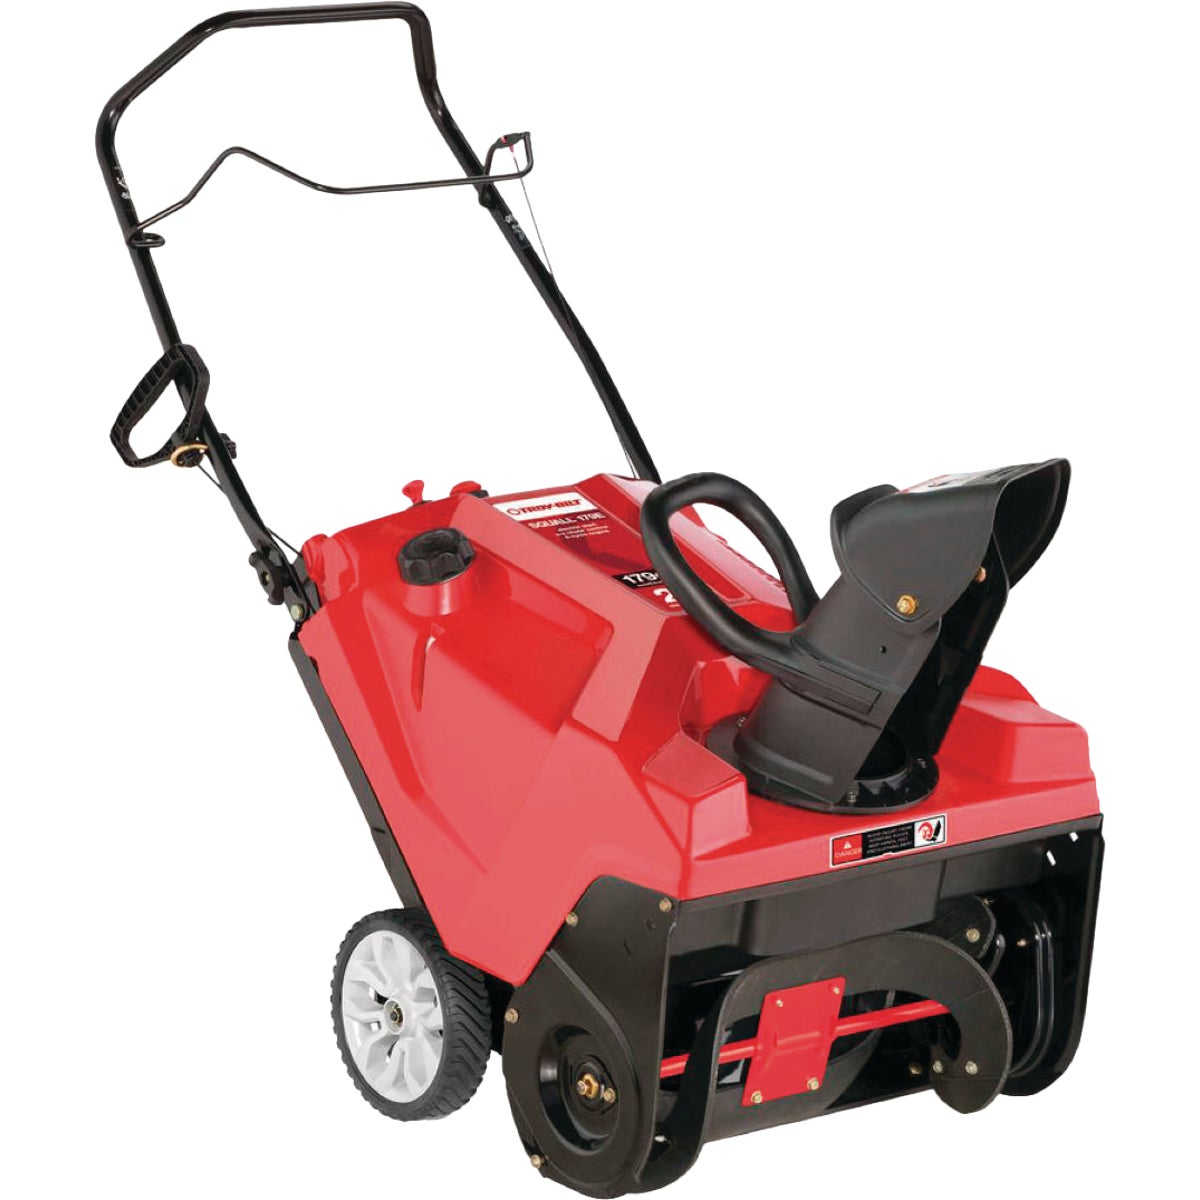 Troy-Bilt Squall 210 21 In. 4-Cycle Gas Snow Blower, 31AS2S5G766